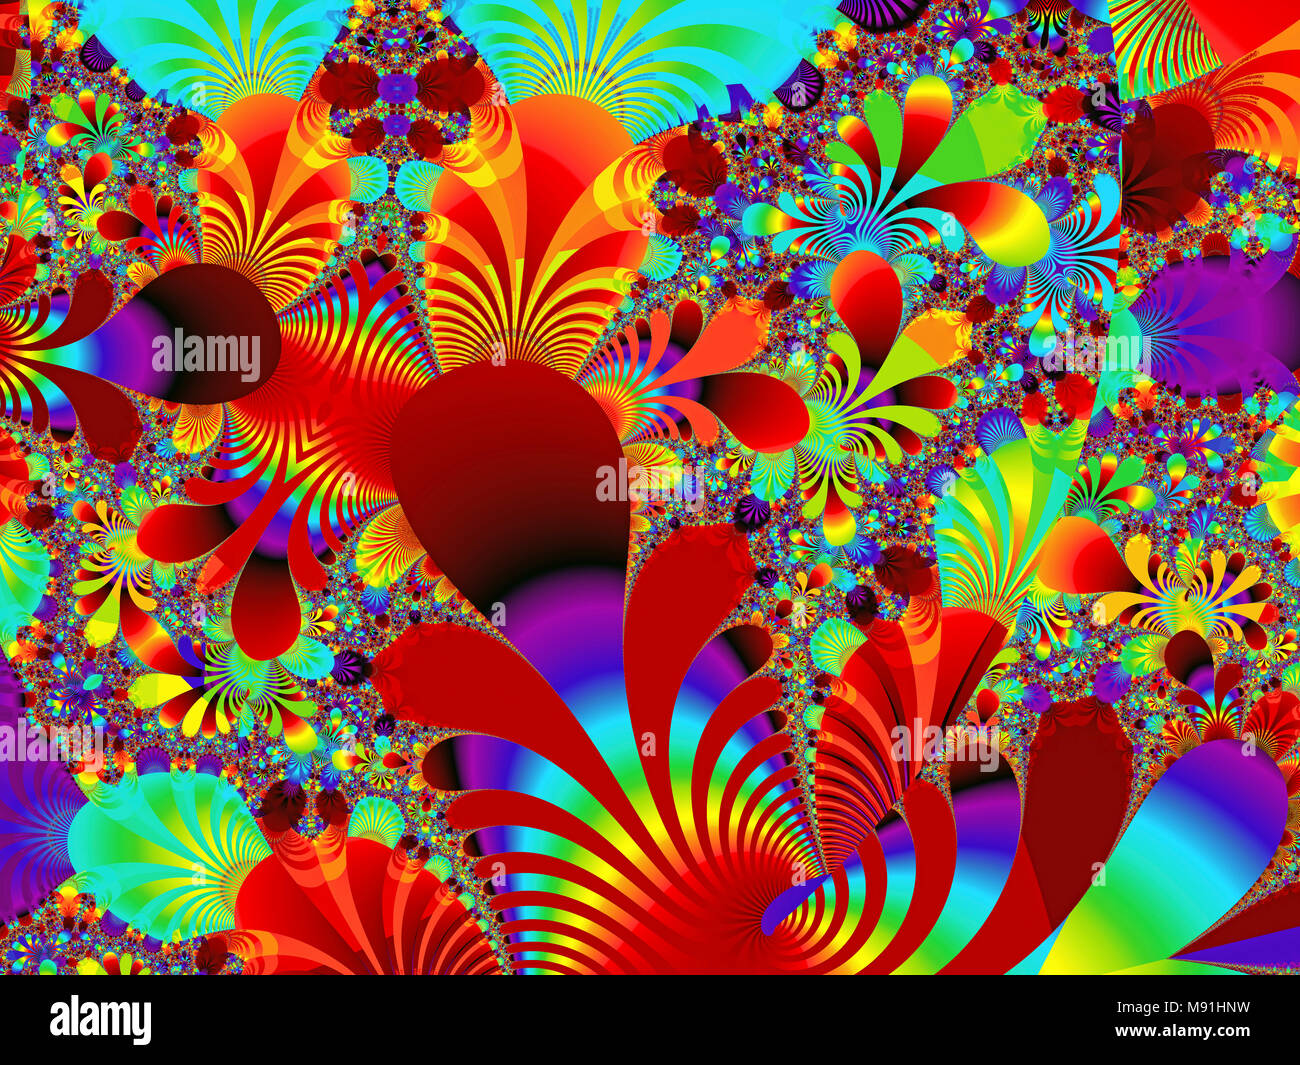 Hippy Psychedelic Desgn - Stock Image